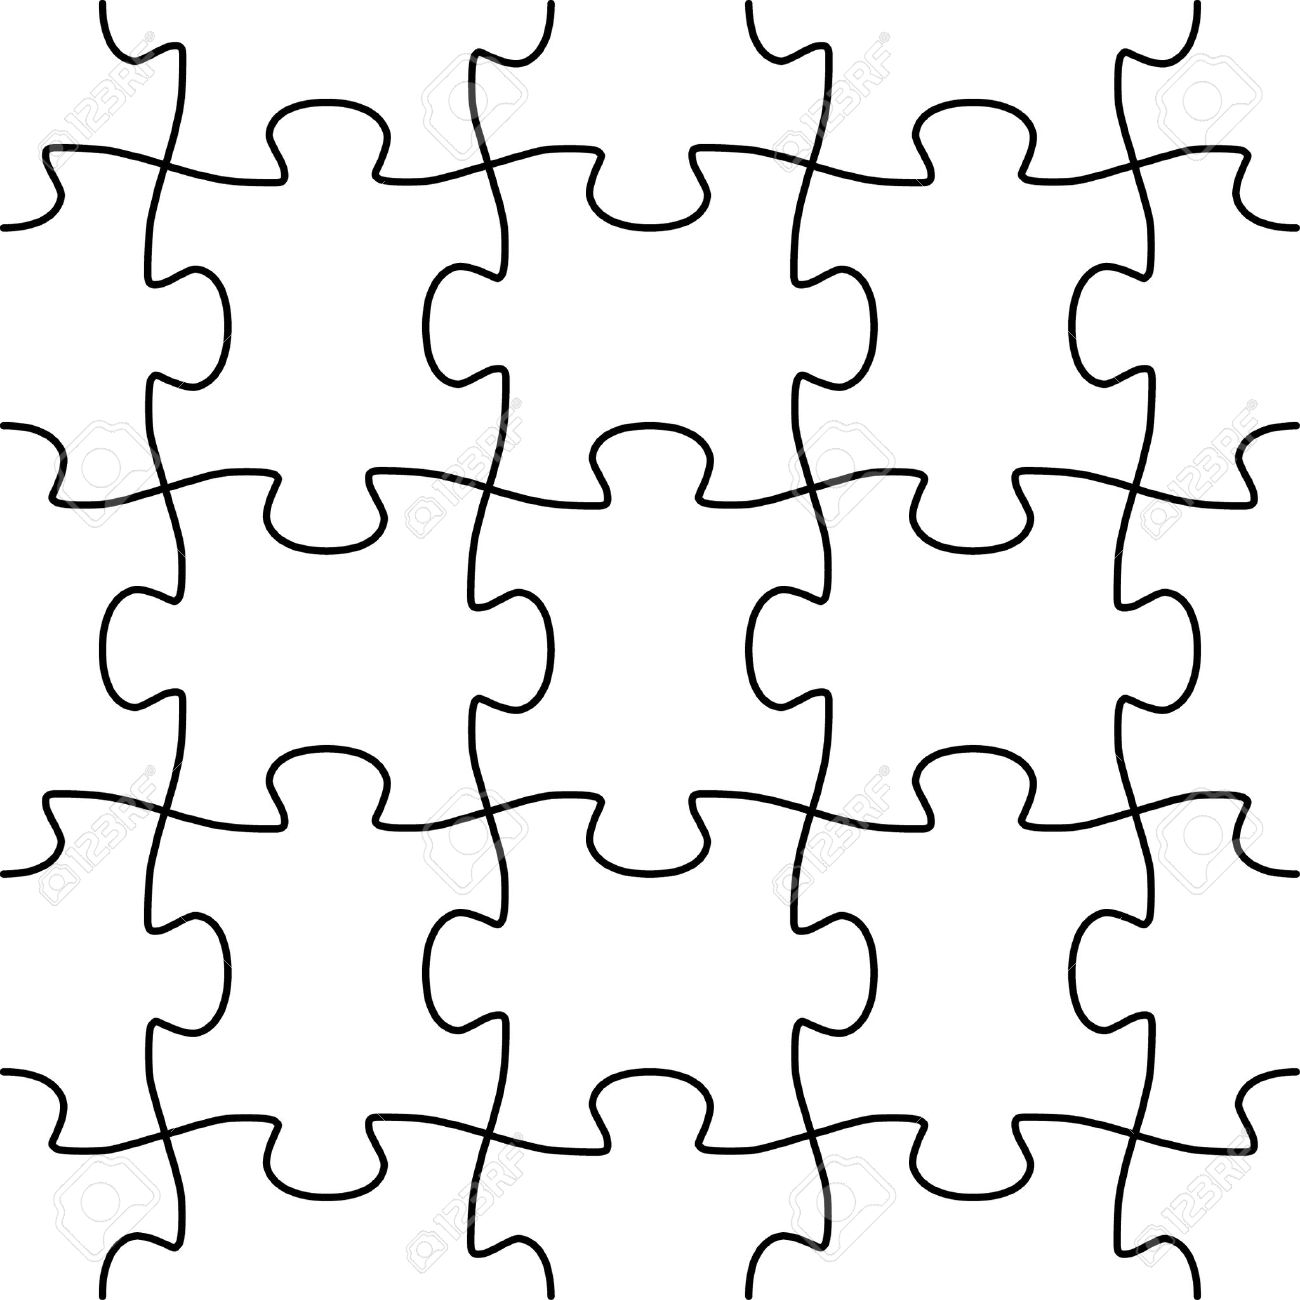 Jigsaw Puzzle Template Vector - Real Clipart And Vector Graphics •